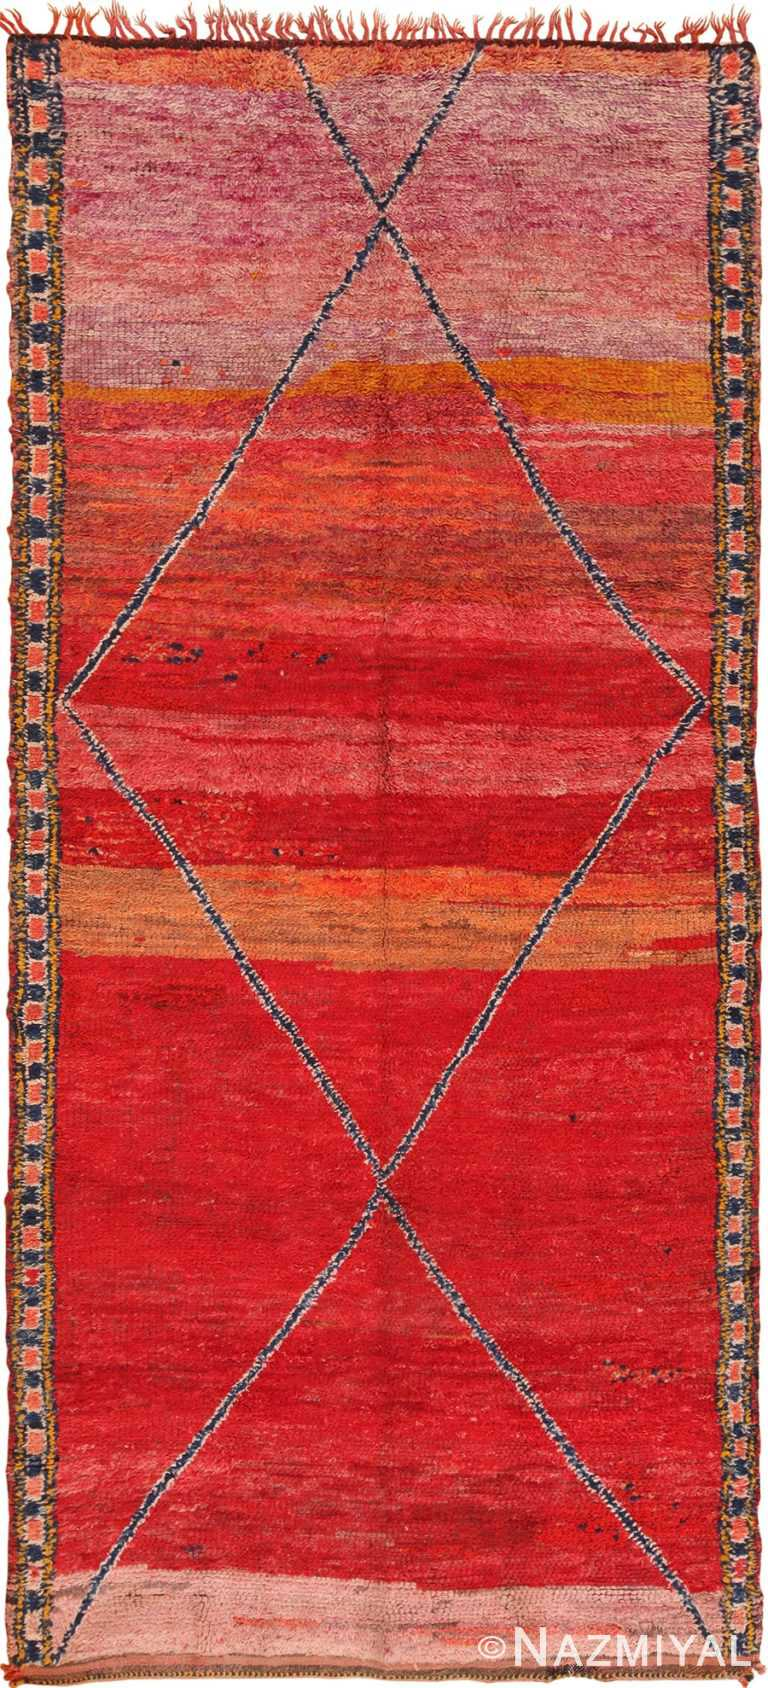 Primitive Vintage Red Moroccan Rug #70089 by Nazmiyal Antique Rugs